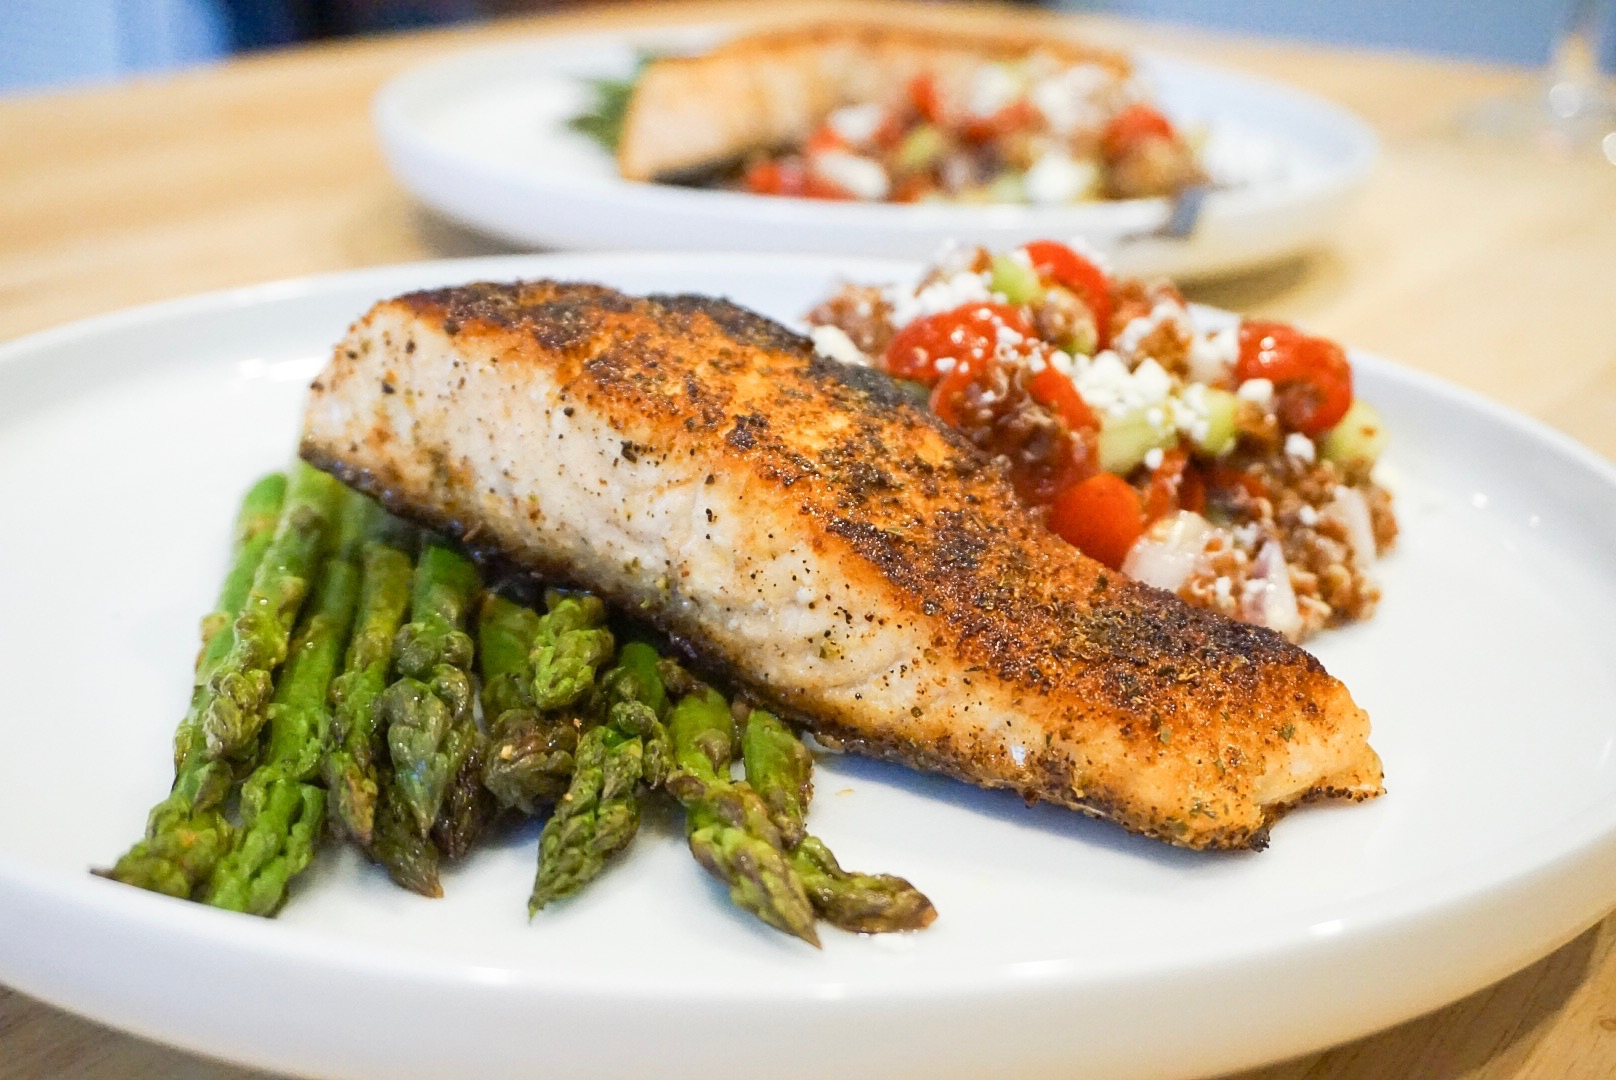 We served our quinoa salad with a seared salmon filet and roasted asparagus!